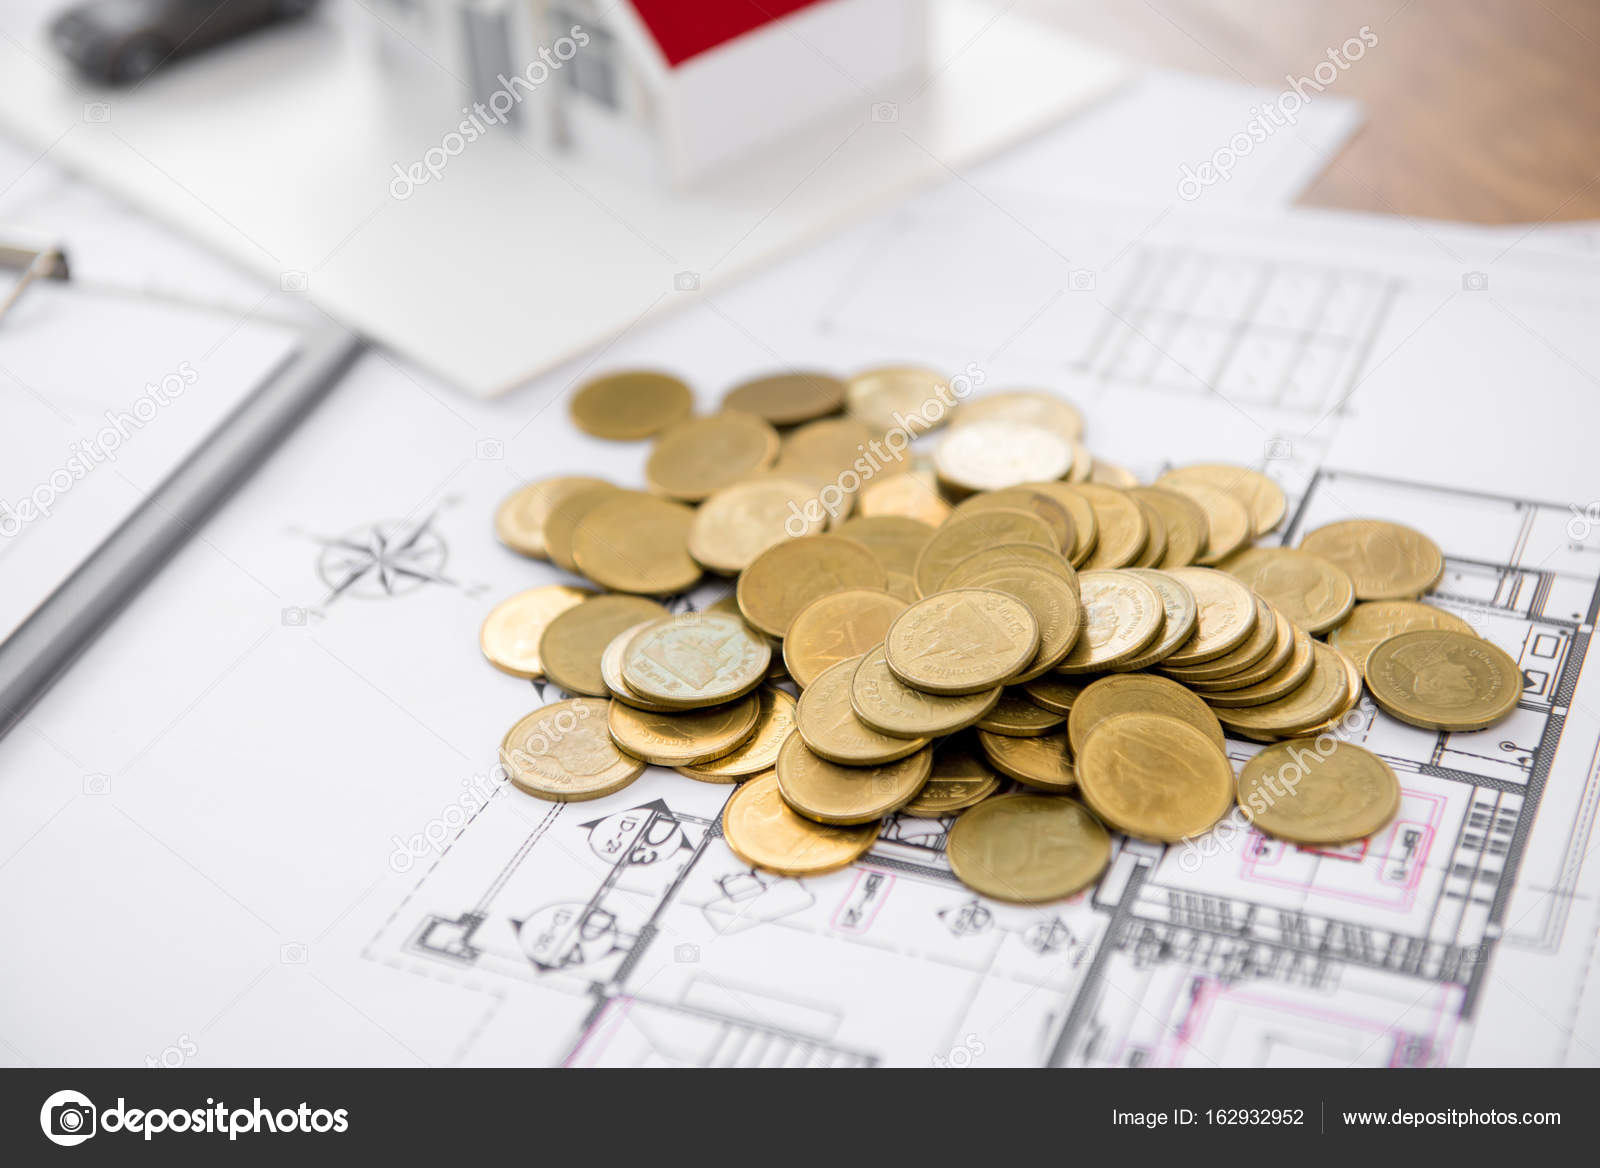 Money on blueprint paper with blurred house model in background money on blueprint paper with blurred house model in background real estate loan and financial concepts photo by kritchanut malvernweather Image collections